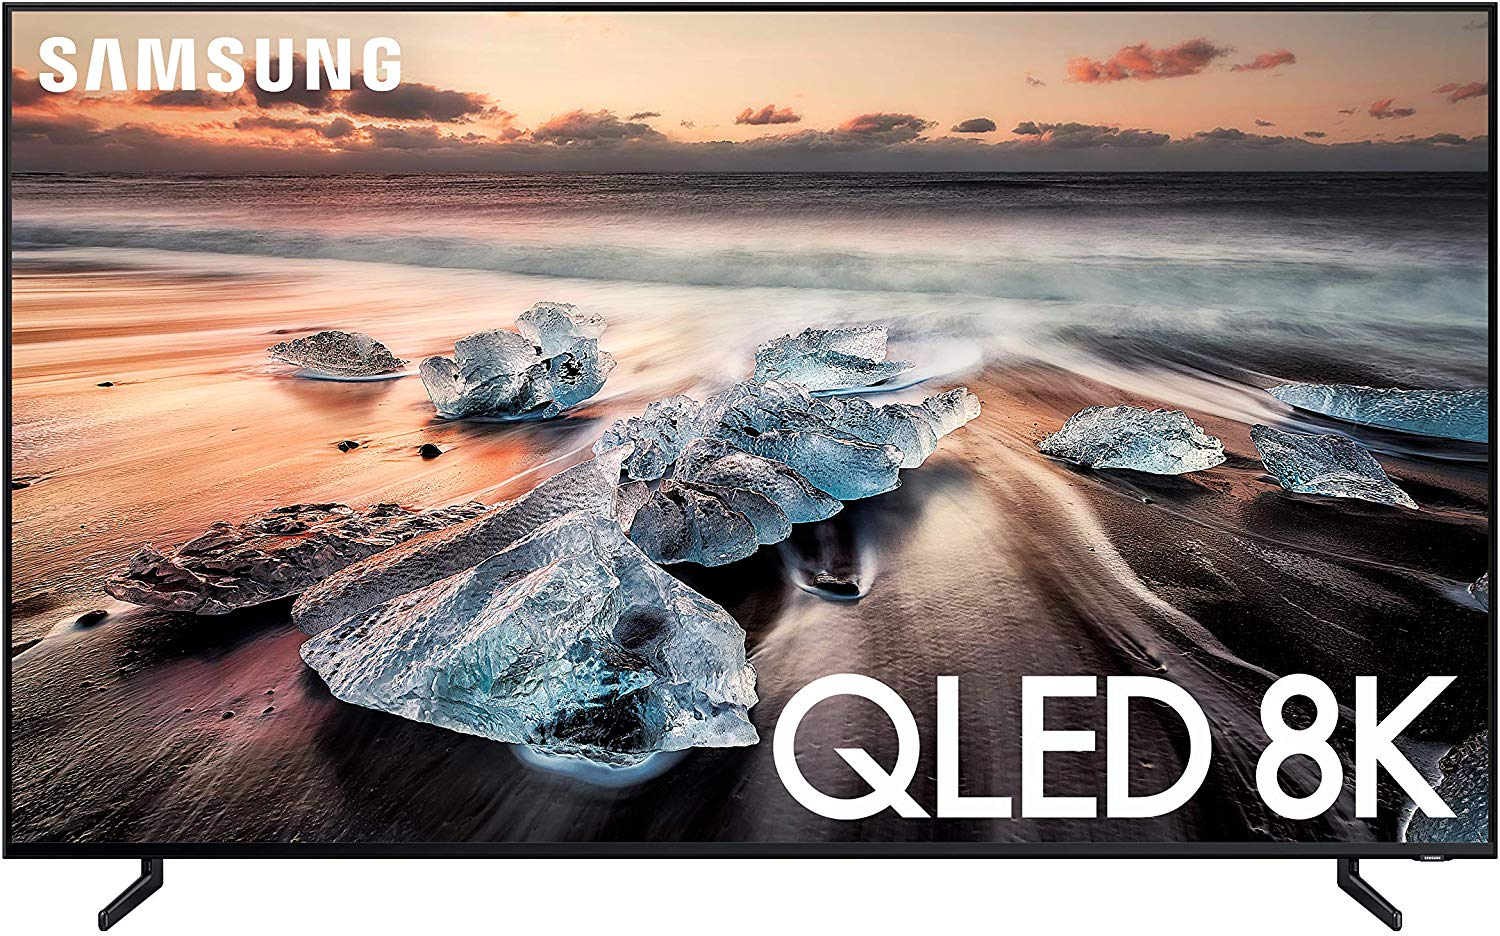 82-Inch Samsung 8K QLED Q900 Series TV Launched in 2019 is Available at Half Price as Black Friday Deal